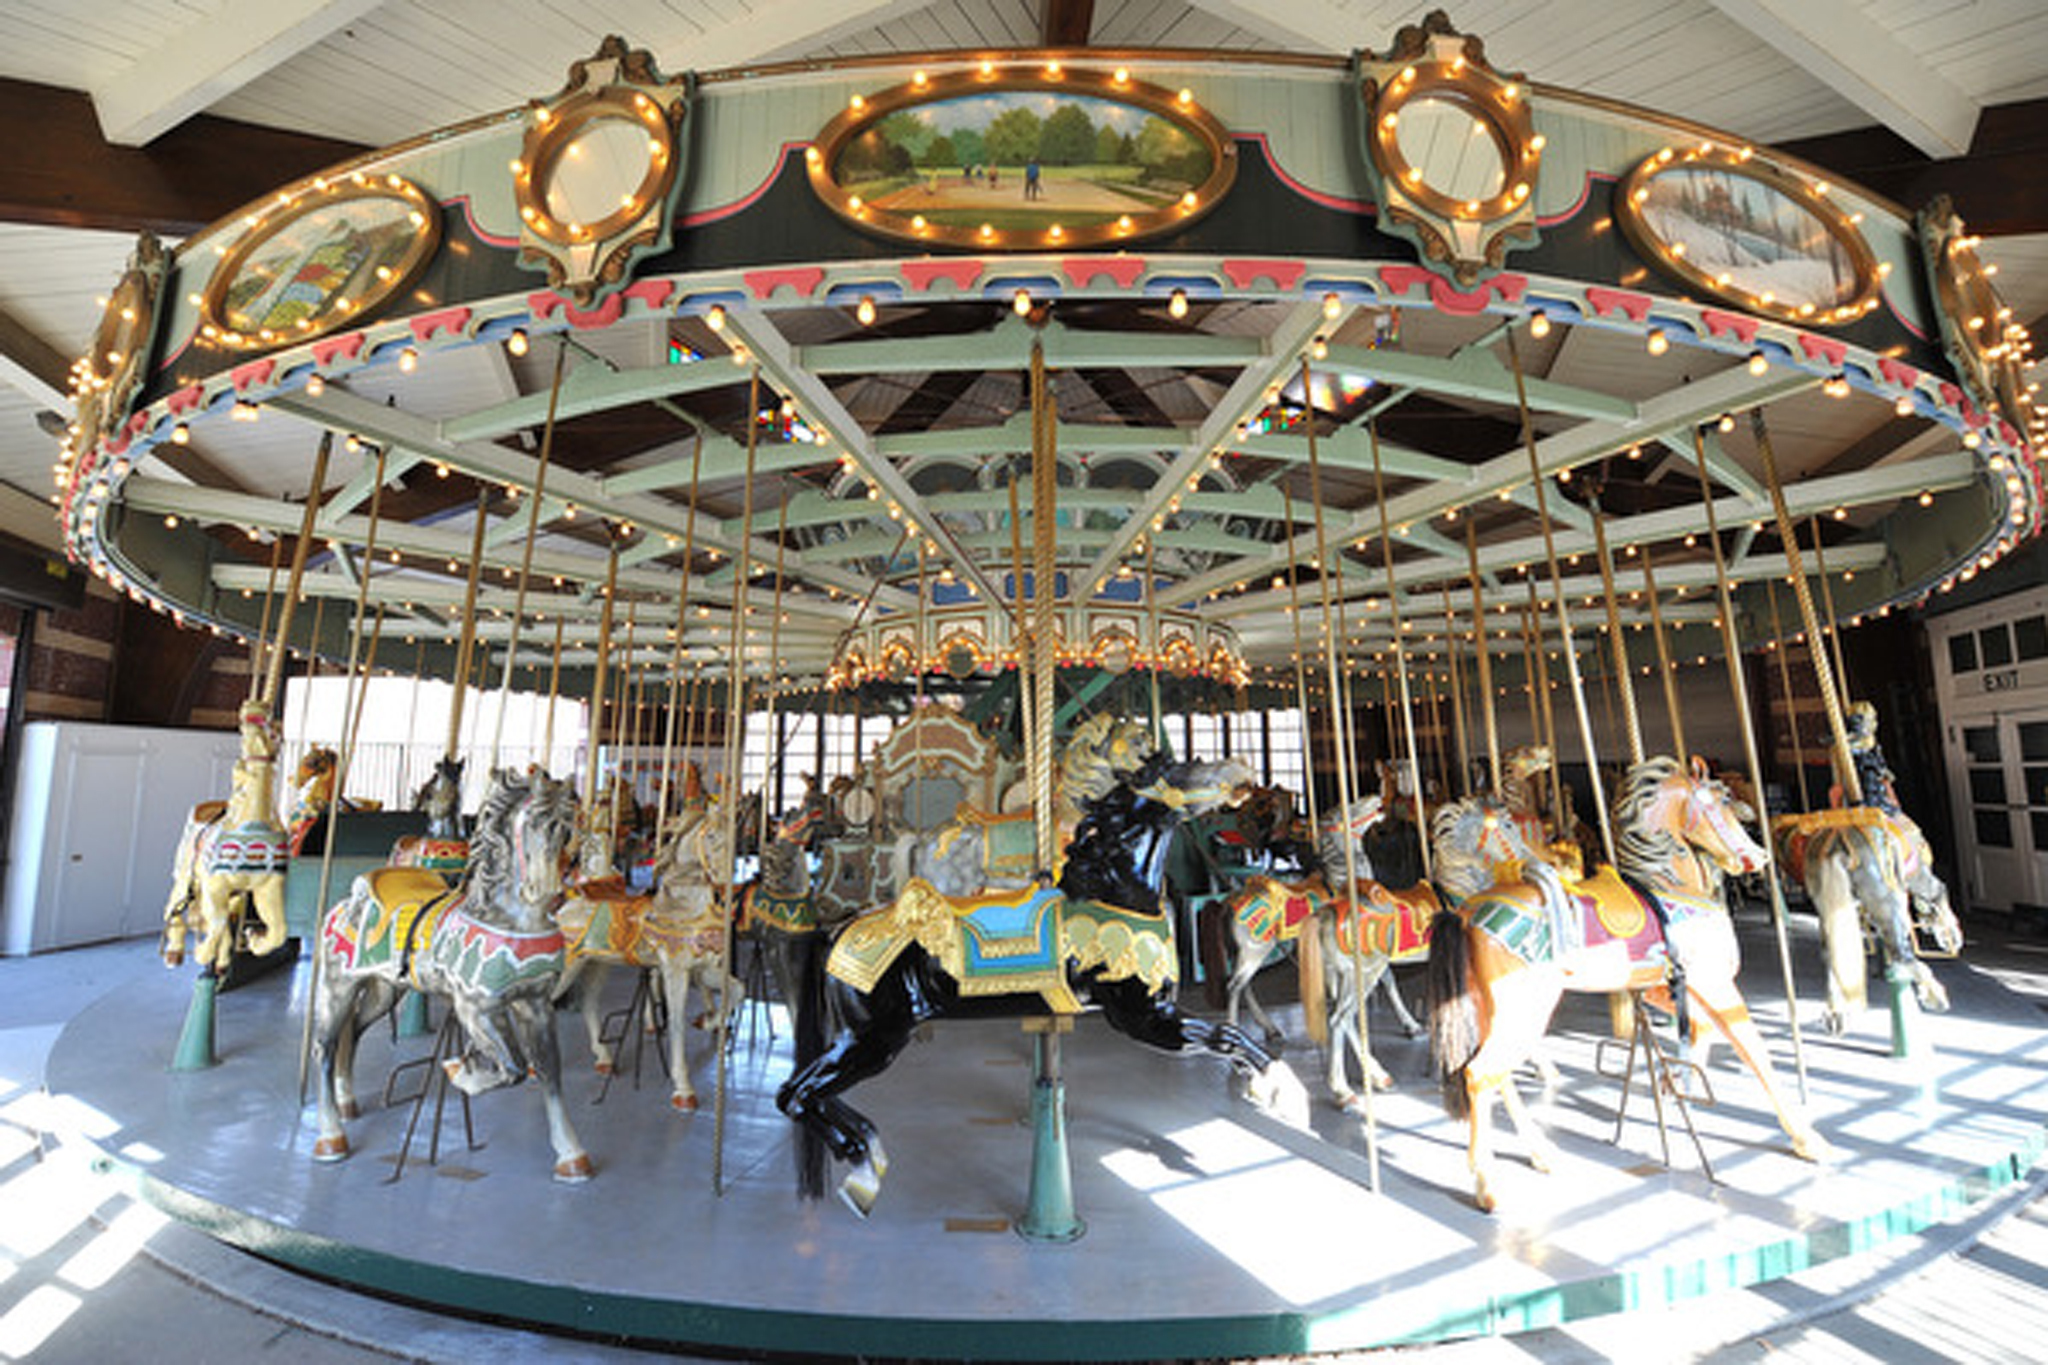 Take a ride on the carousel